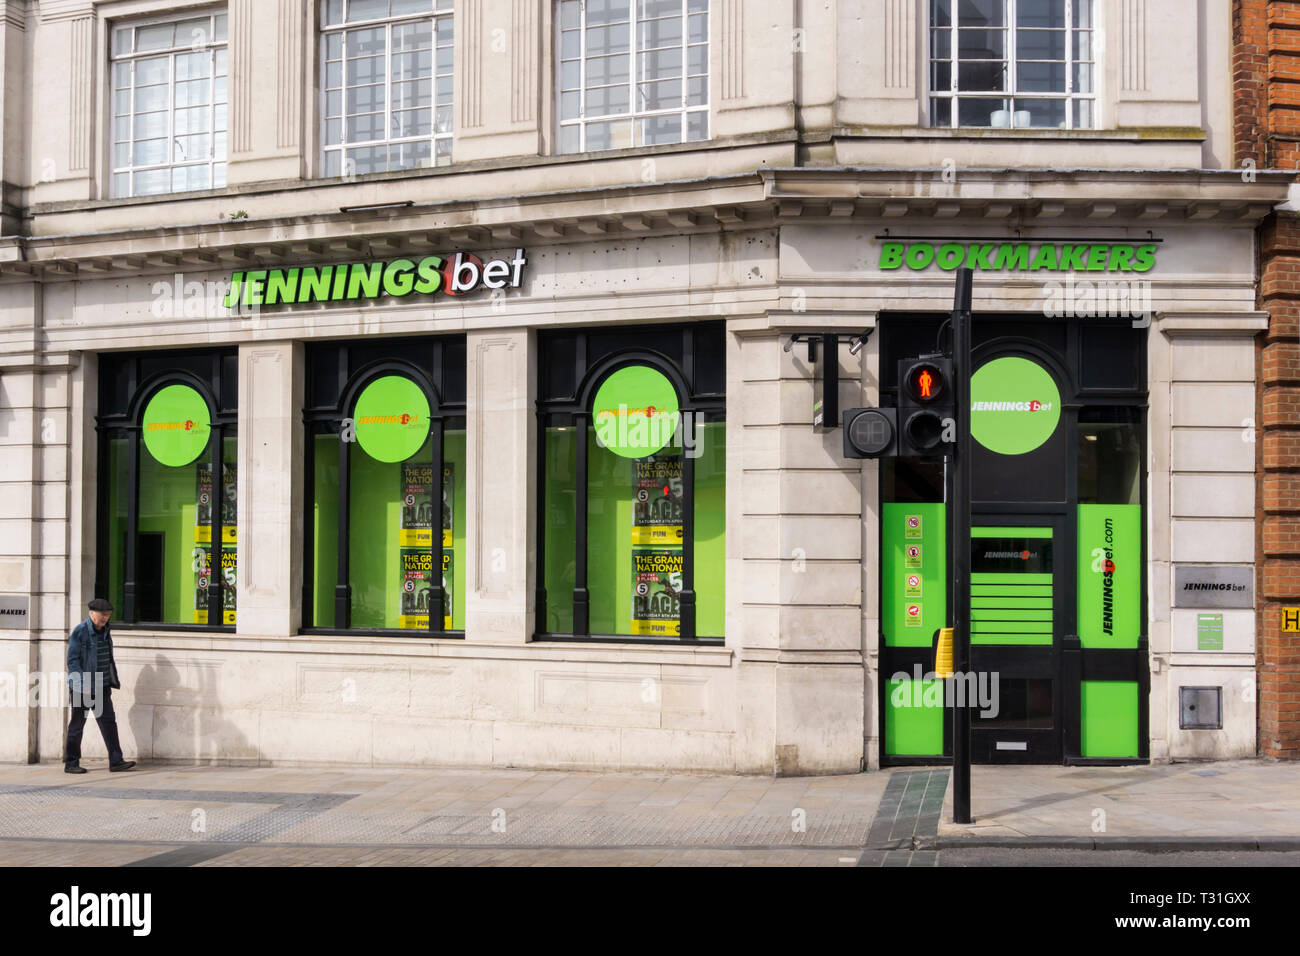 A branch of Jennings Bet bookmakers in the old closed premises of Lloyds Bank on Bromley Market Square, South London. Stock Photo